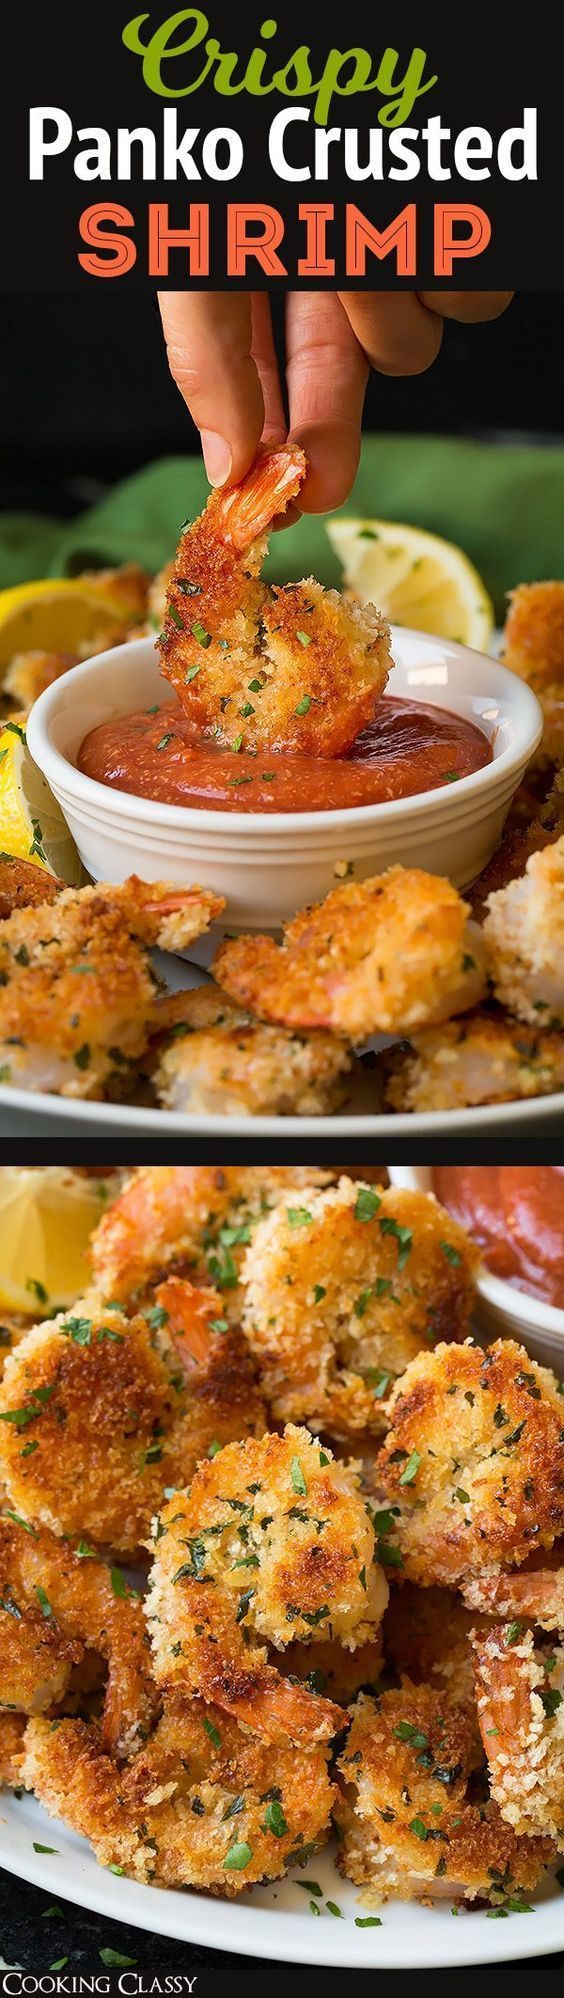 Crispy Panko Shrimp with Cocktail Sauce Cooking Classy